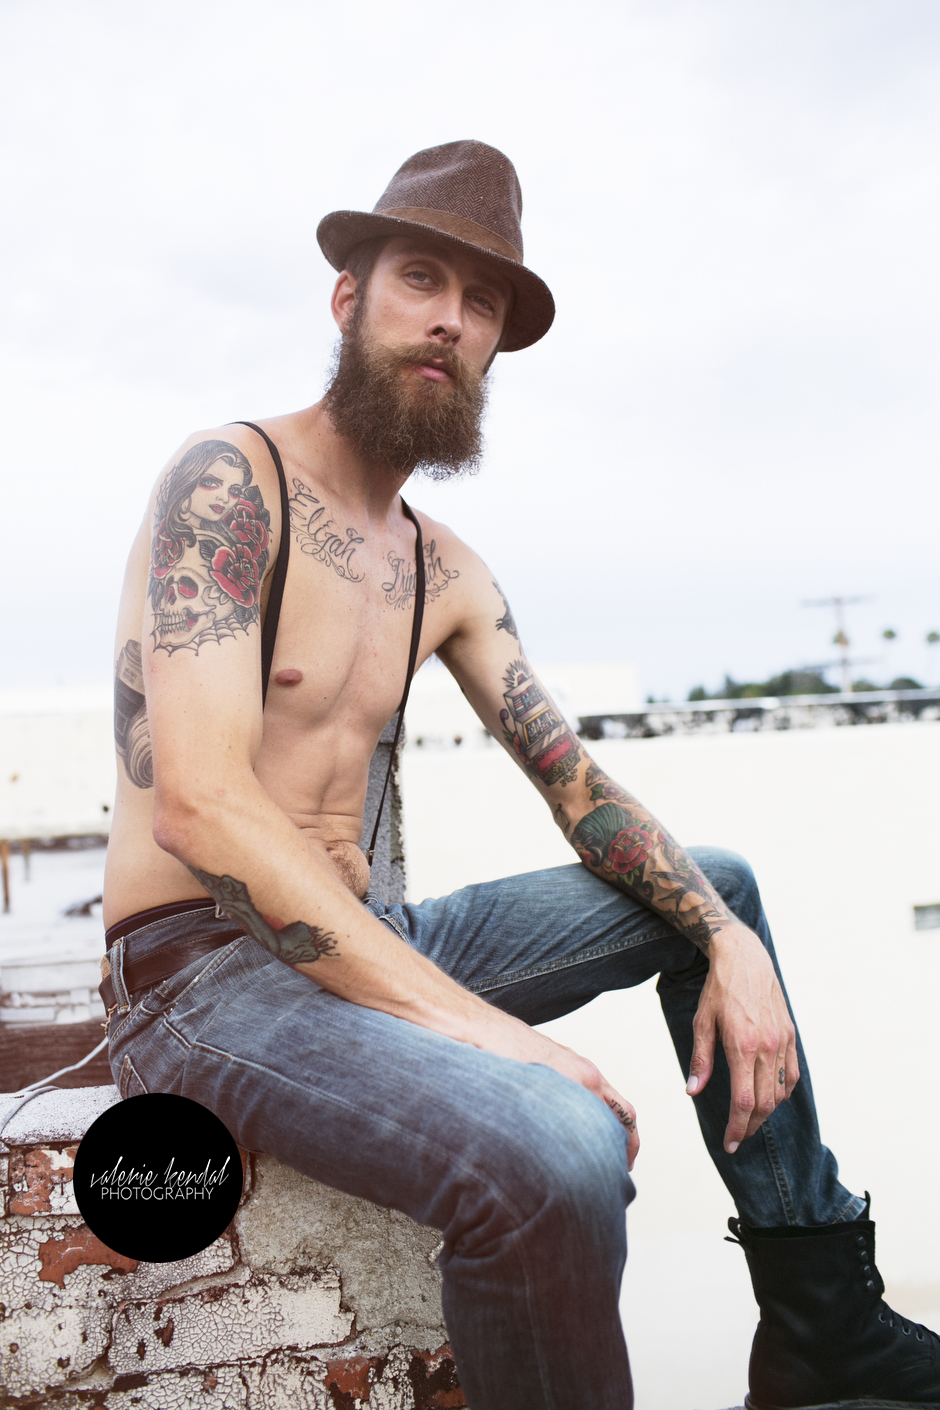 Los-Angeles-Tattoo-Suspenders-Commercial-Lifestyle-Rooftop-Valerie-Kendal-Photography -Mark B 866.JPG